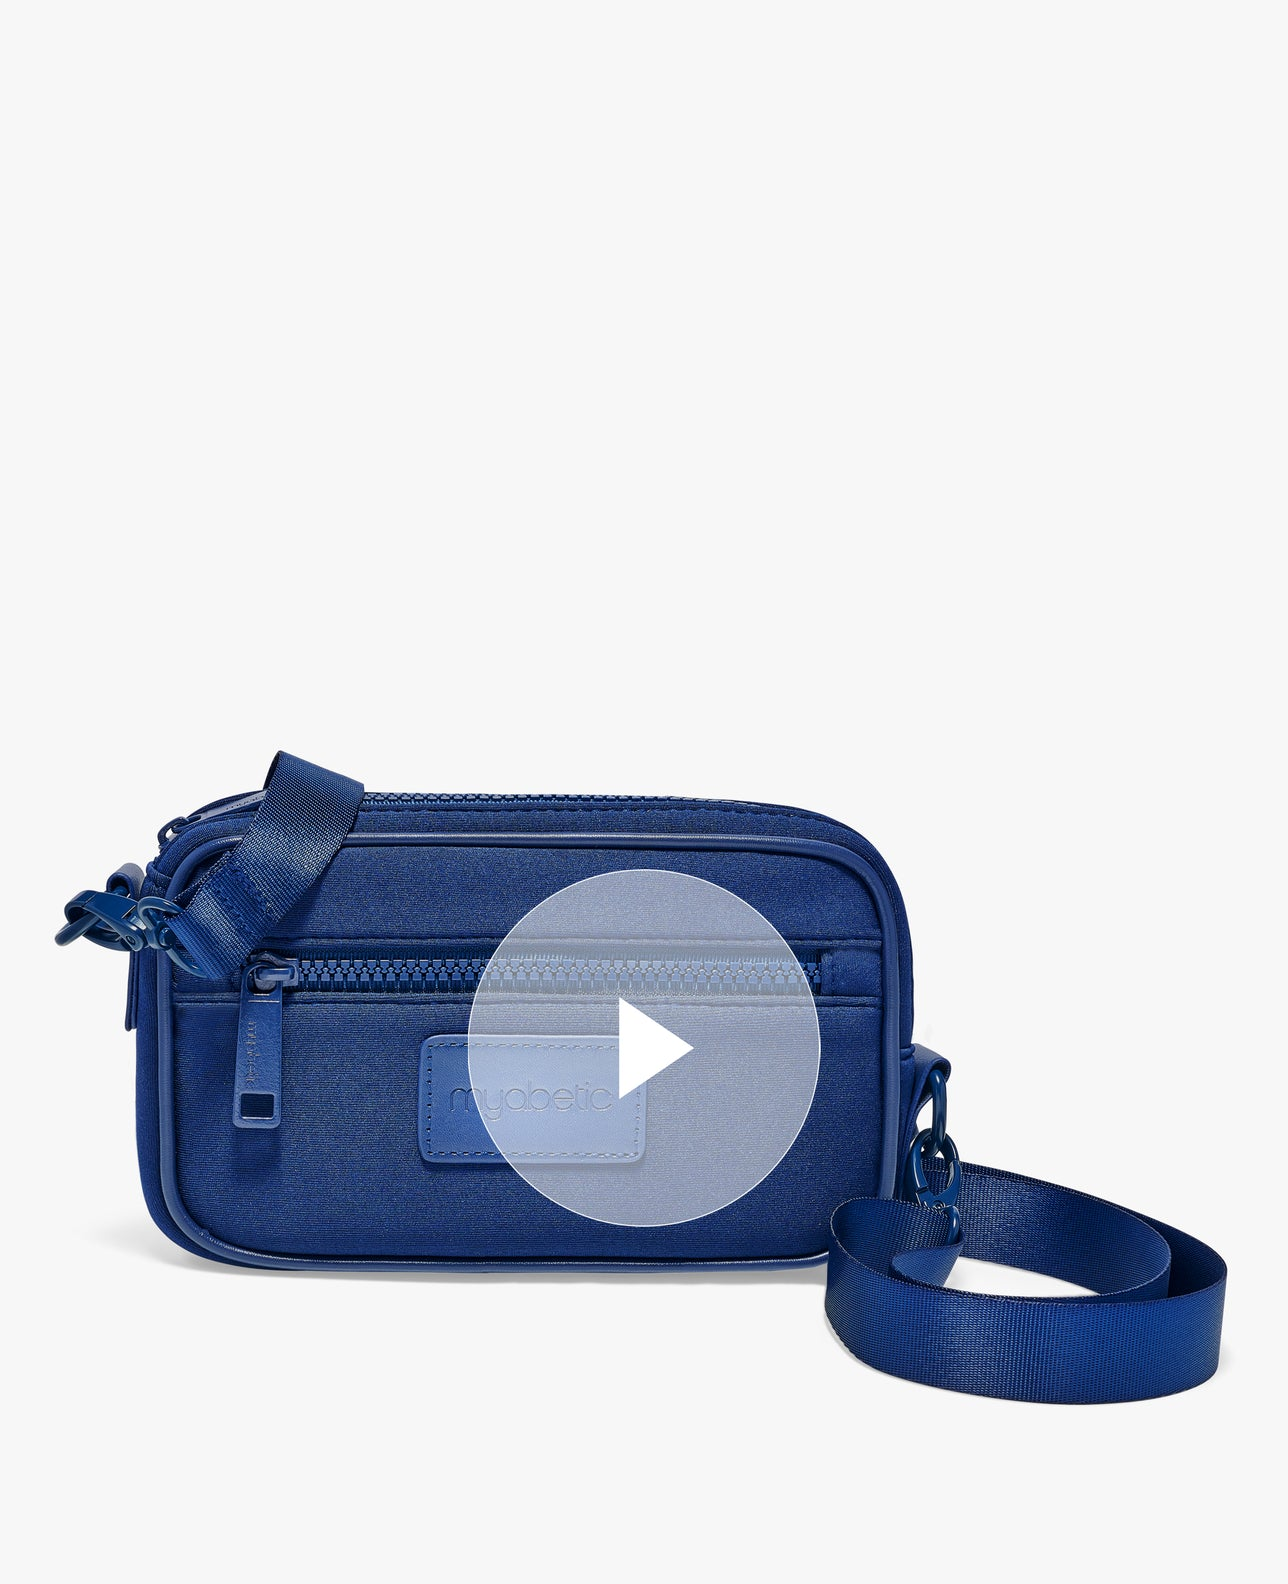 color:navy neoprene  https://player.vimeo.com/video/537949175